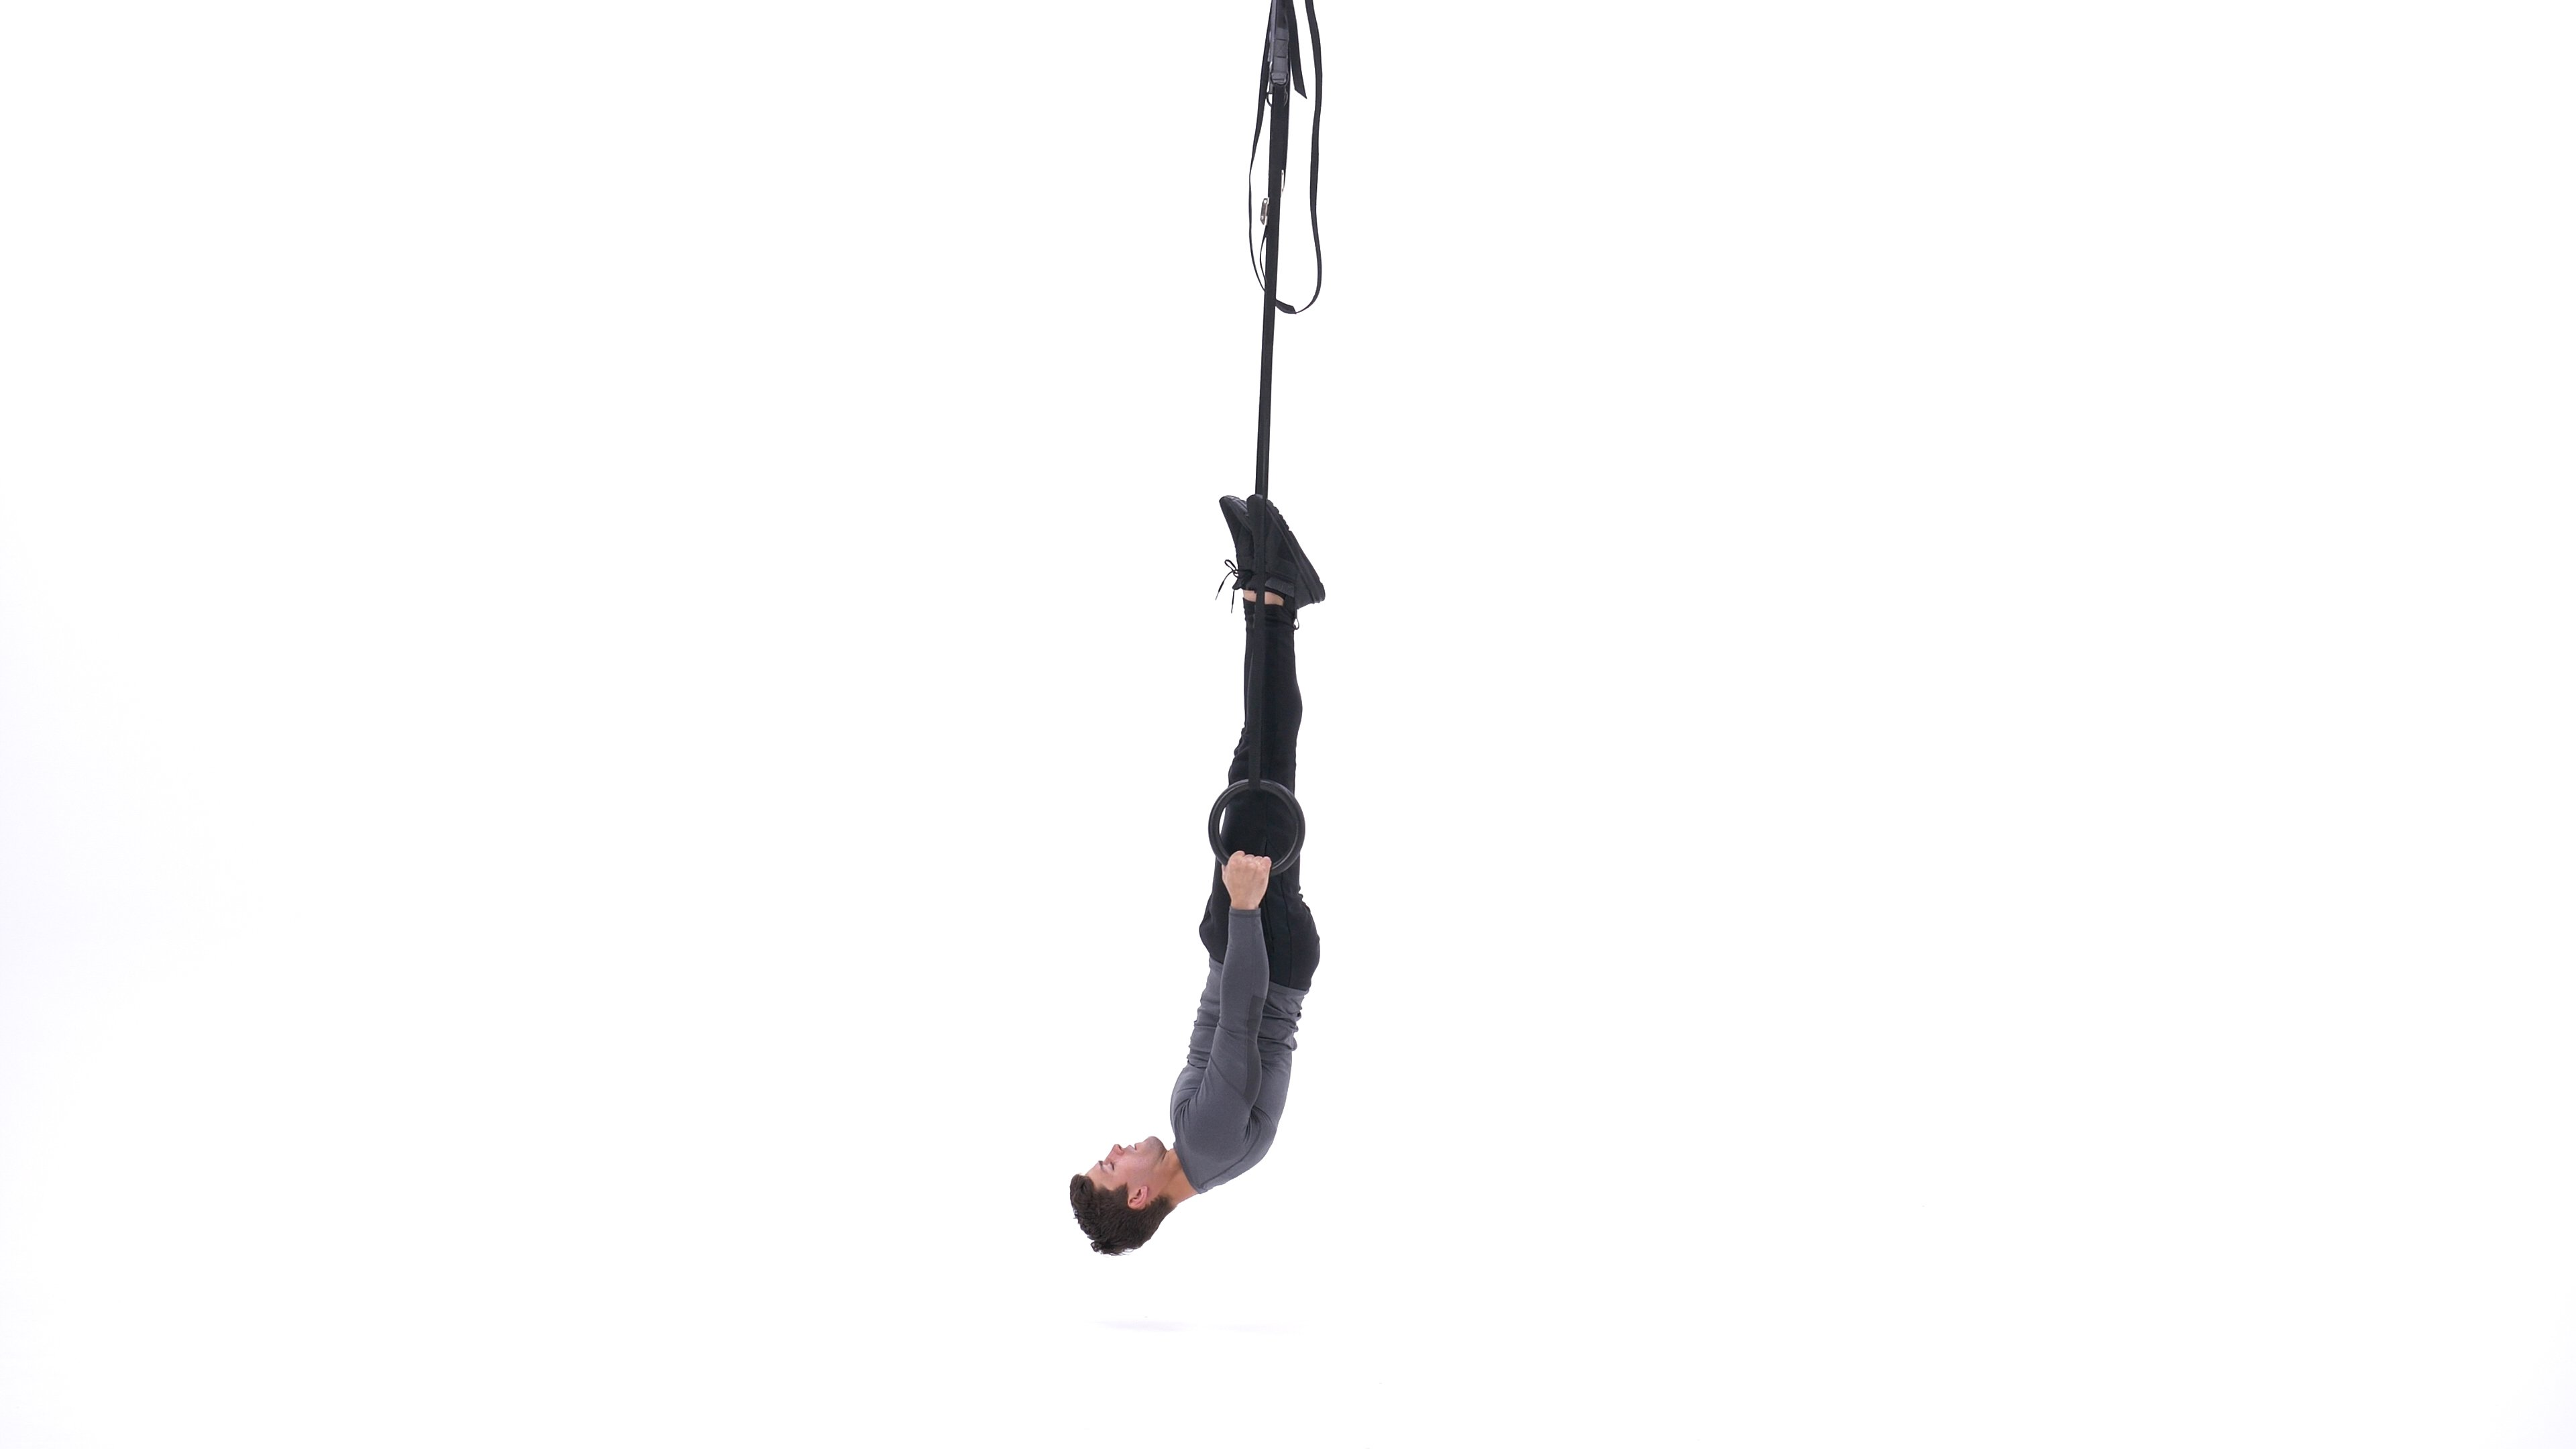 Upside-down pull-up image